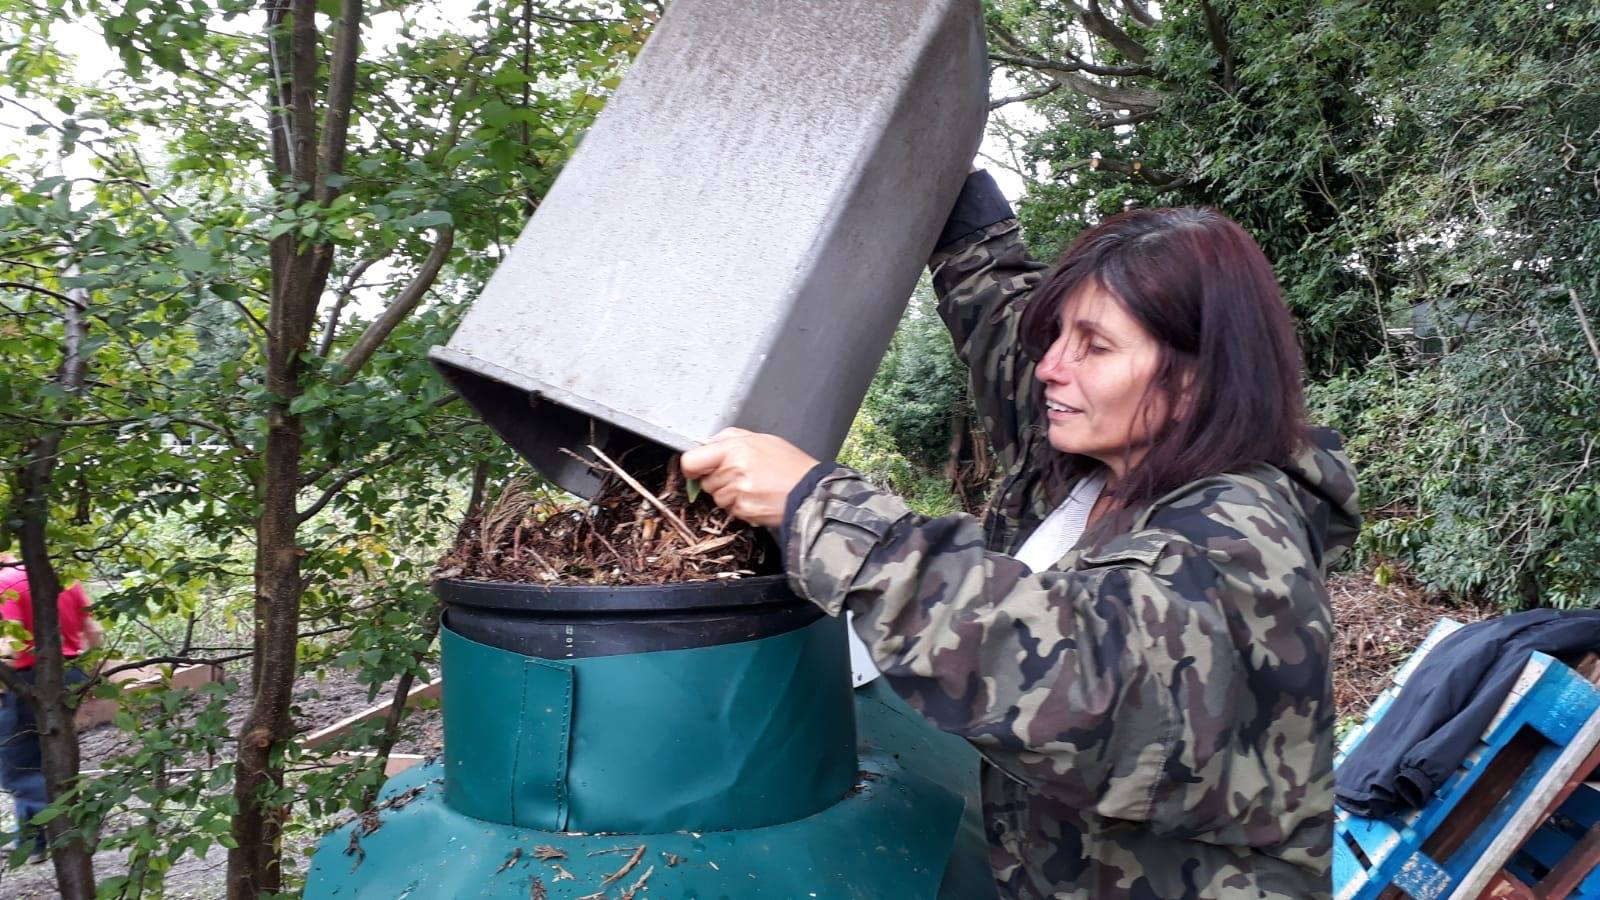 Feeding the Composter